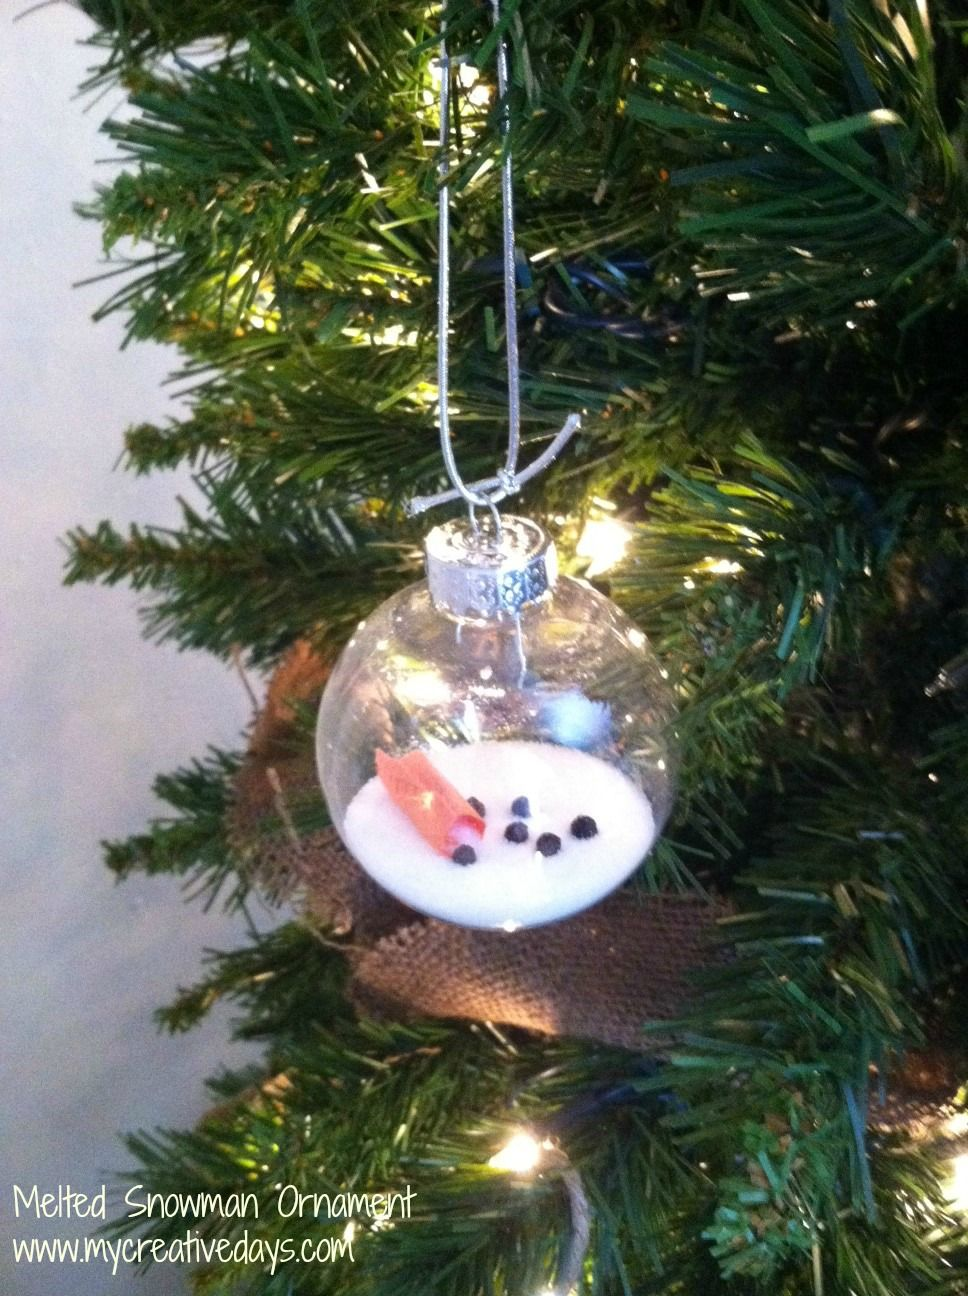 Homemade Christmas Ornament Melted Snowman Ornament